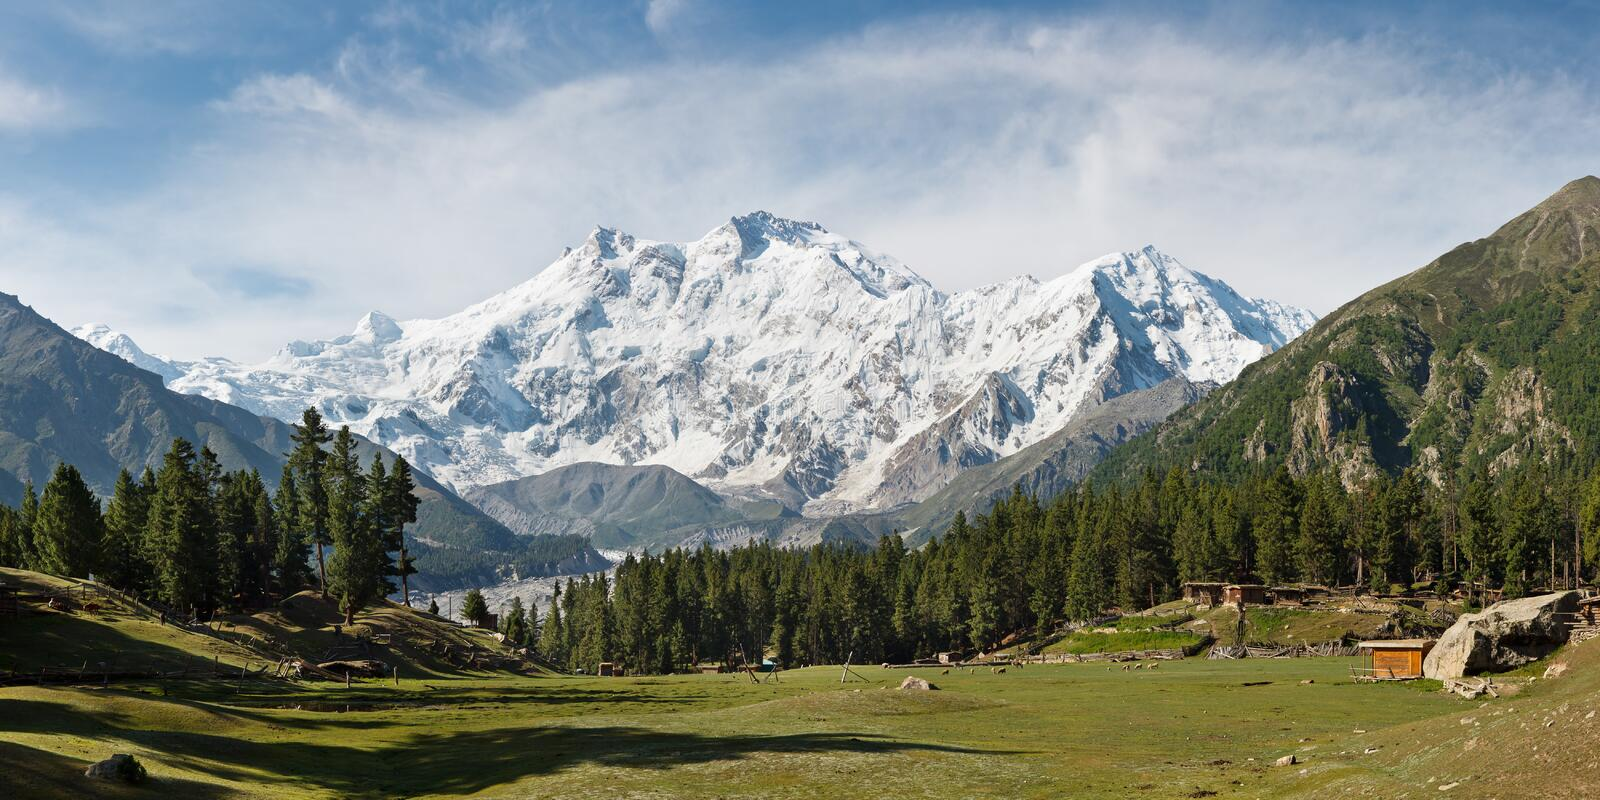 Nanga Parbat and Fairy Meadows Panorama, Himalaya, Pakistan. The ninth highest mountain in the world and western anchor of the Himalaya seen from the idyllic stock image